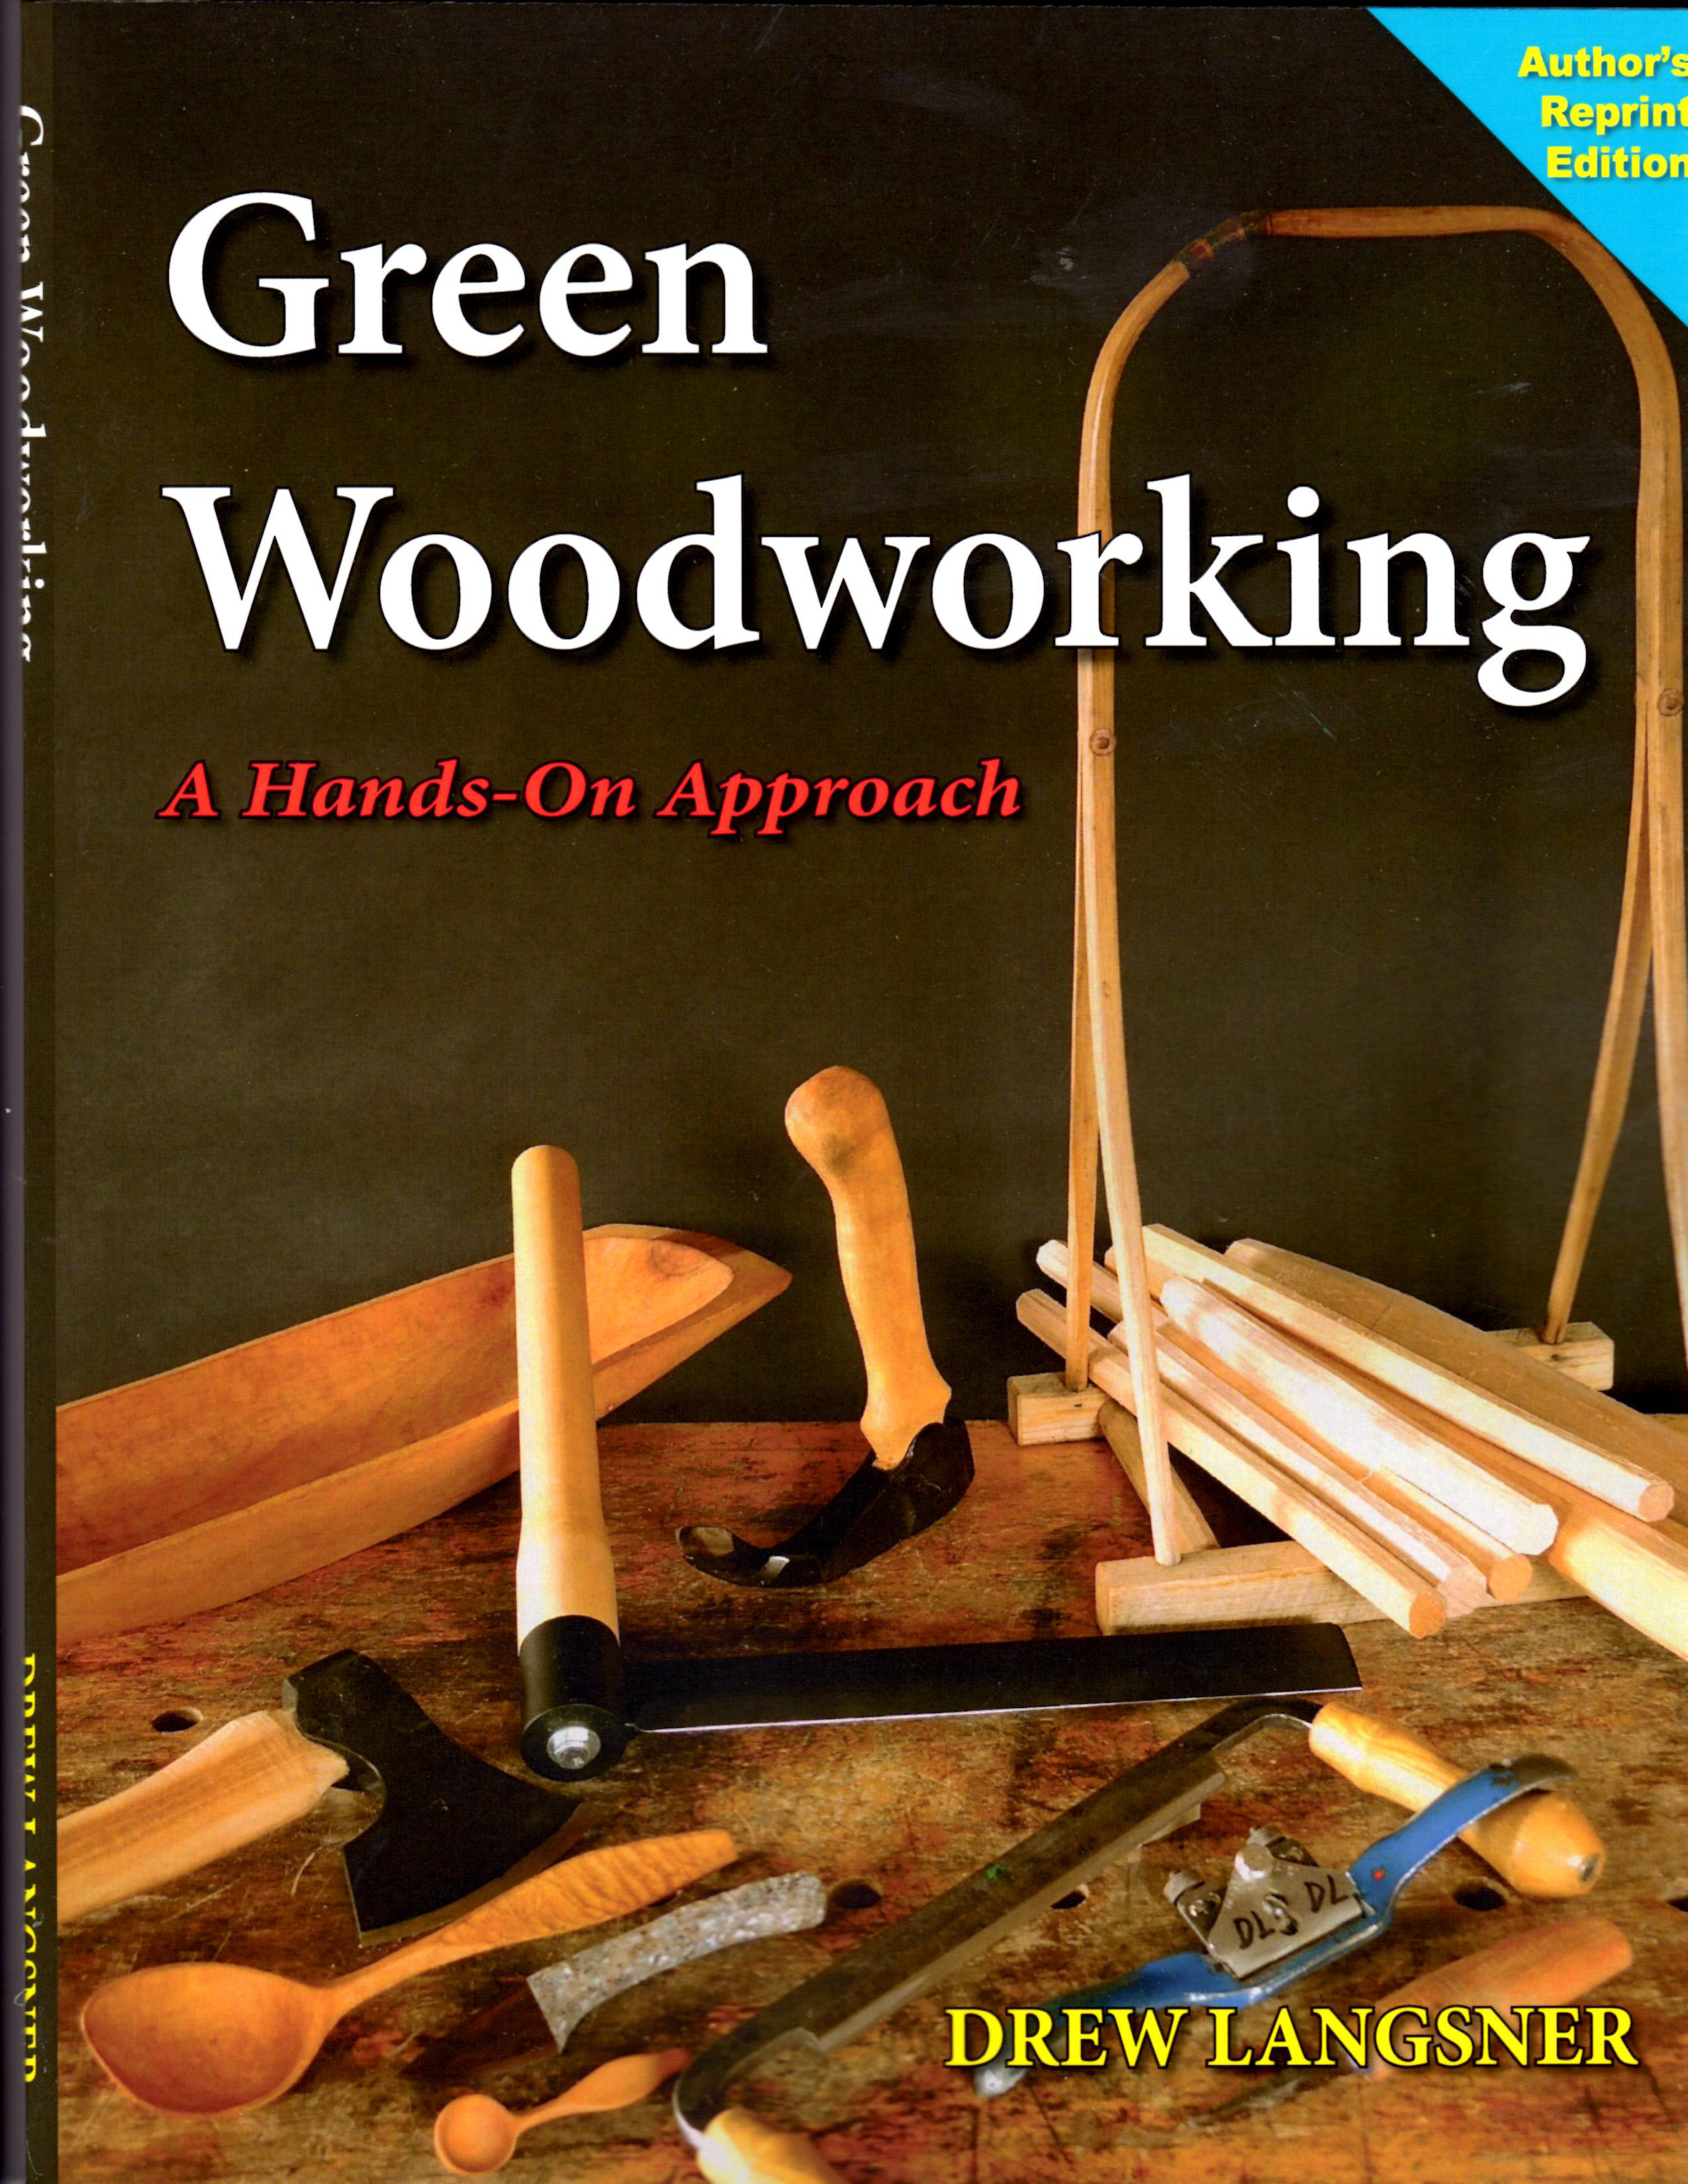 highland woodworking tools